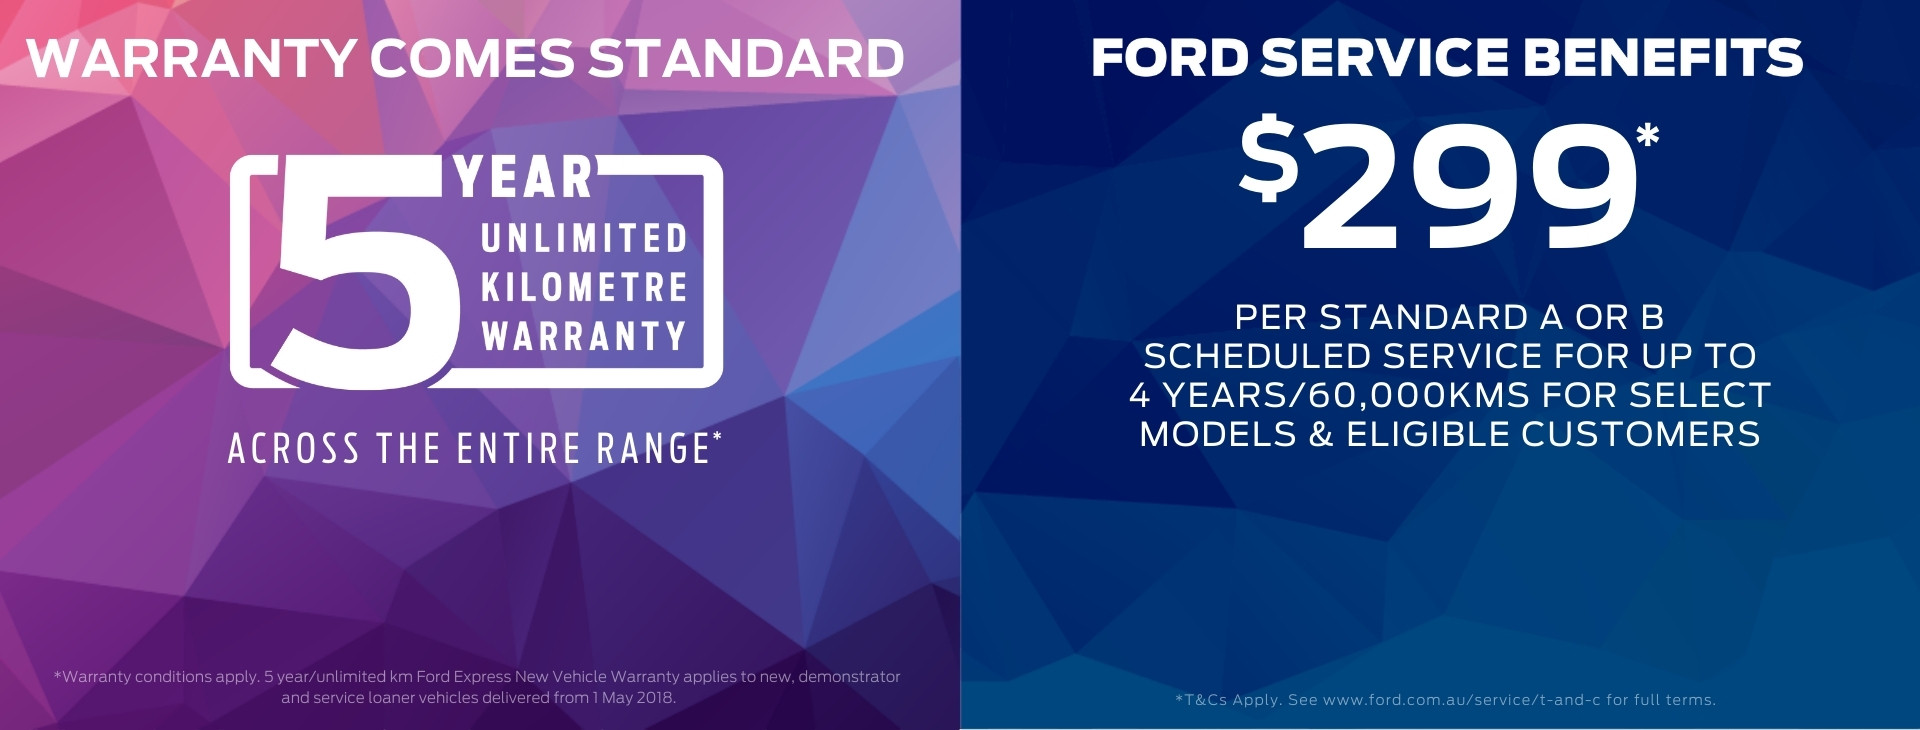 Ford Warranty and Service